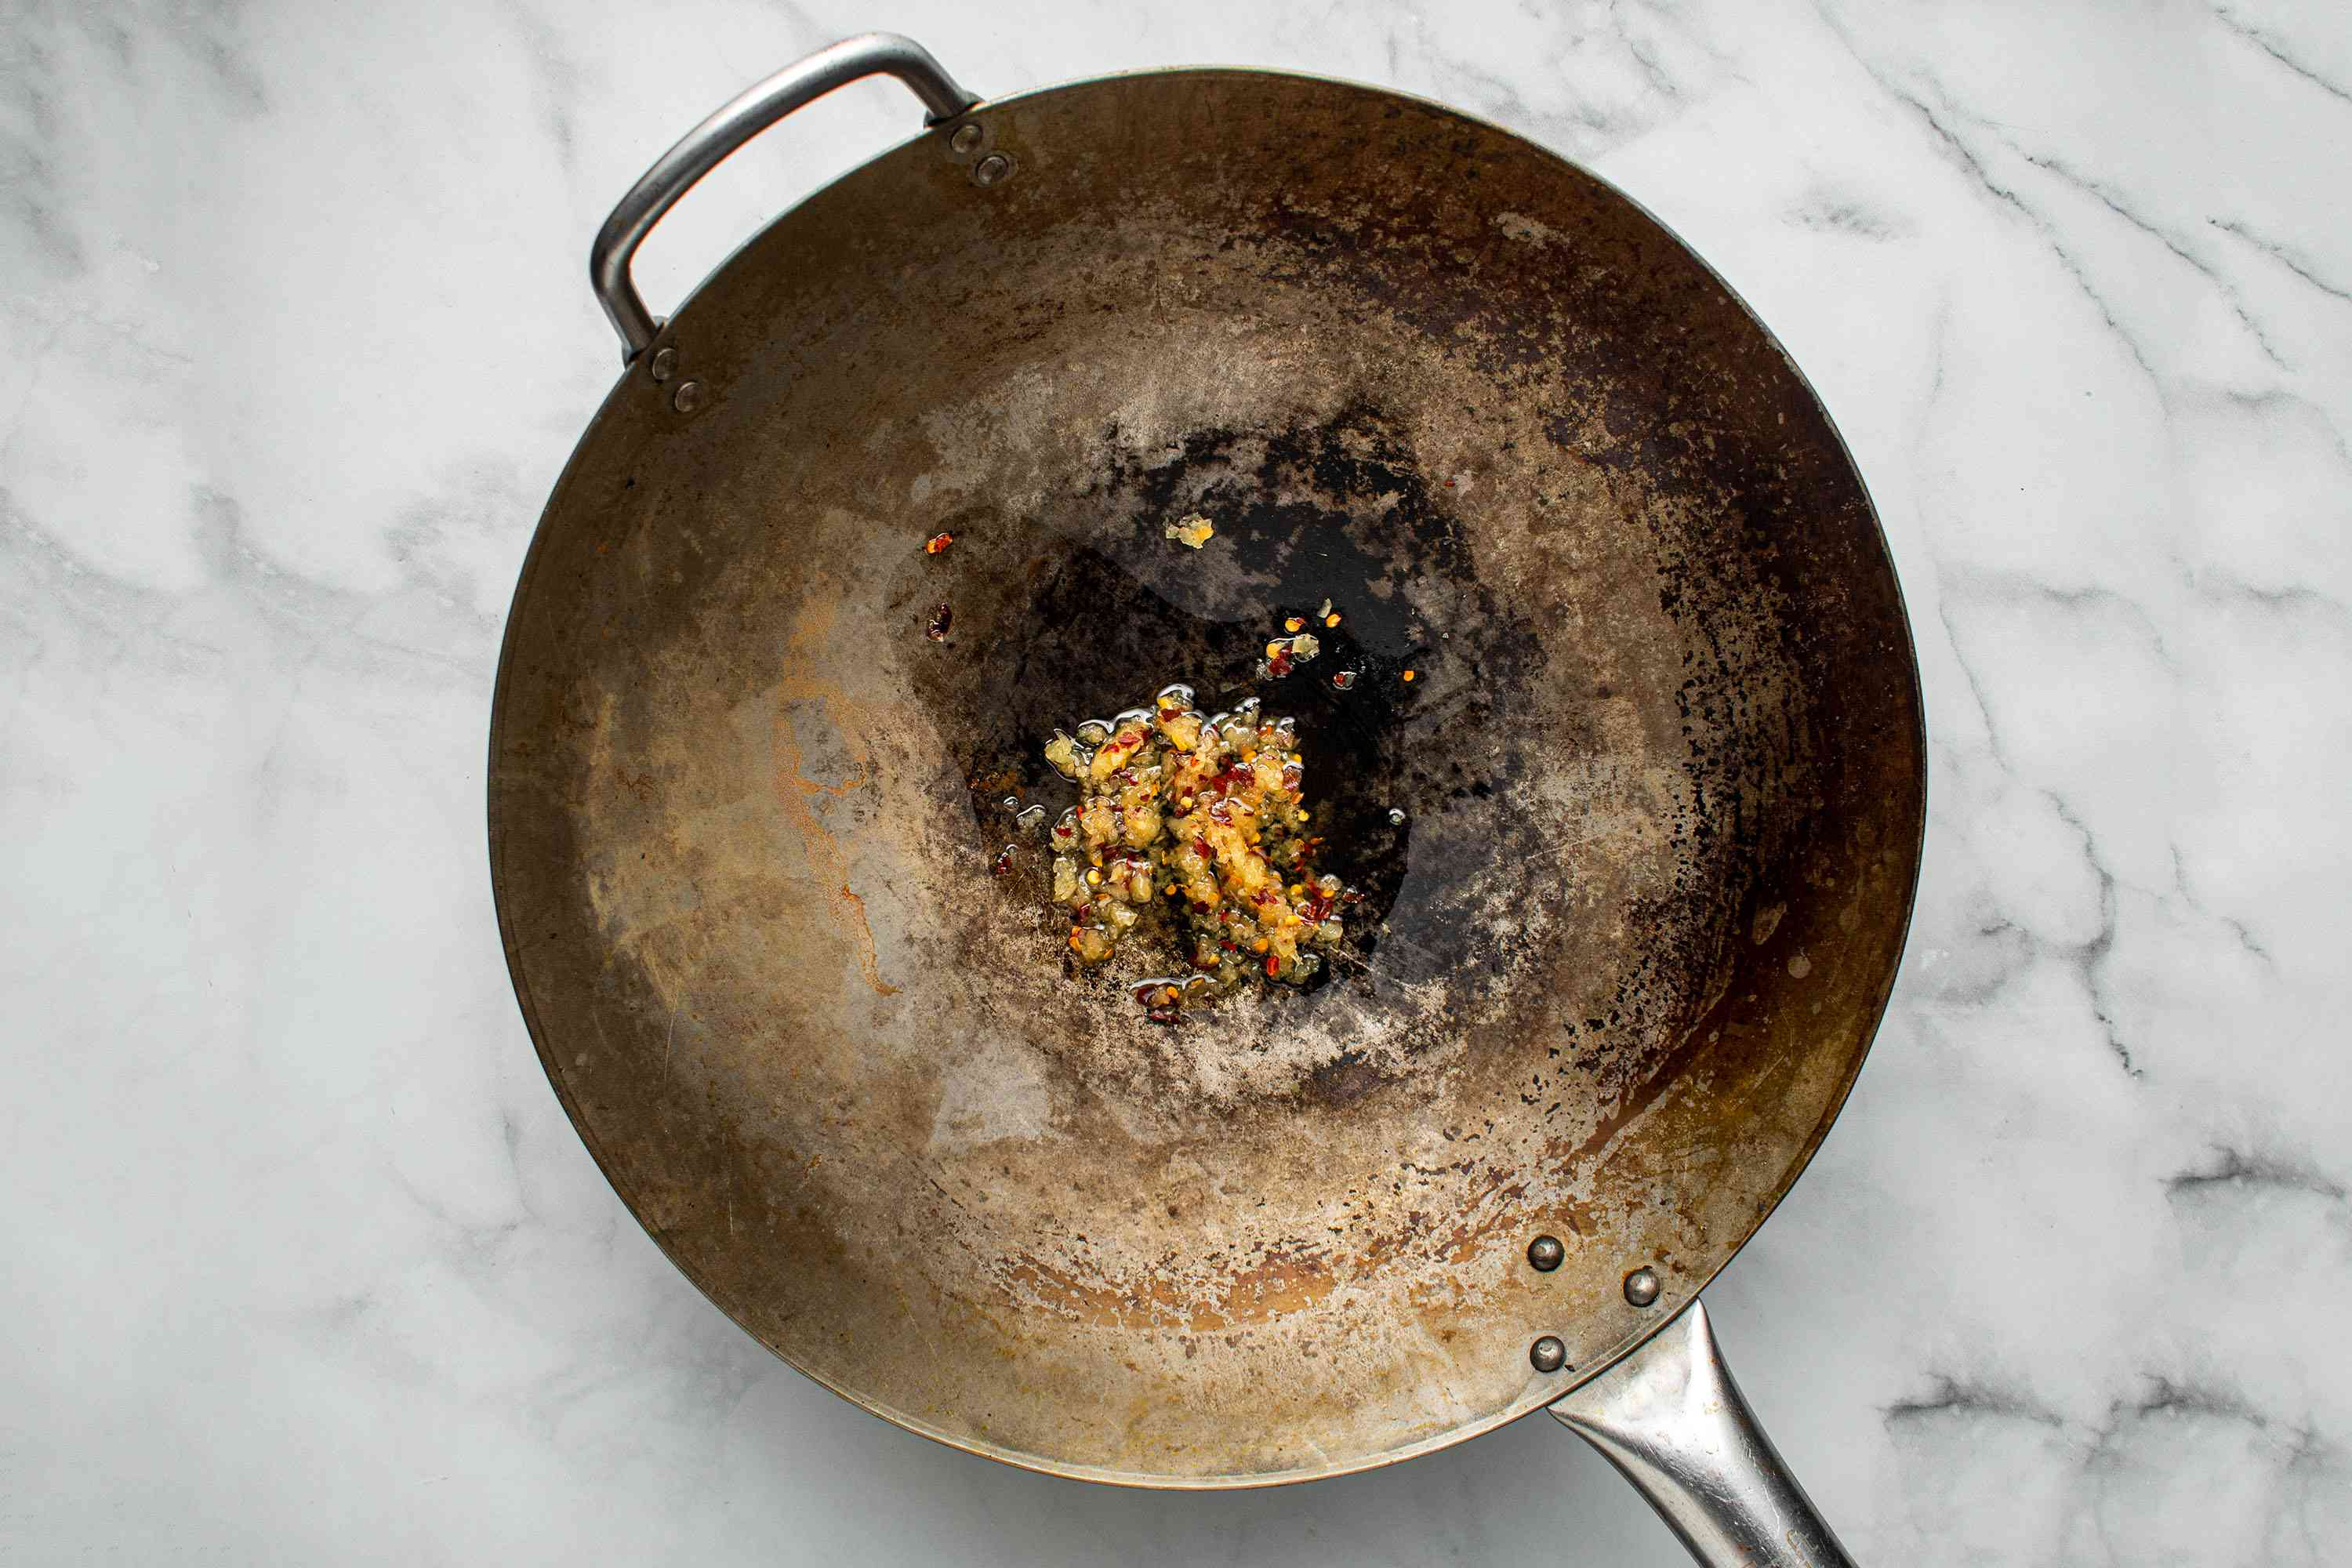 minced garlic and chili mixture in a wok